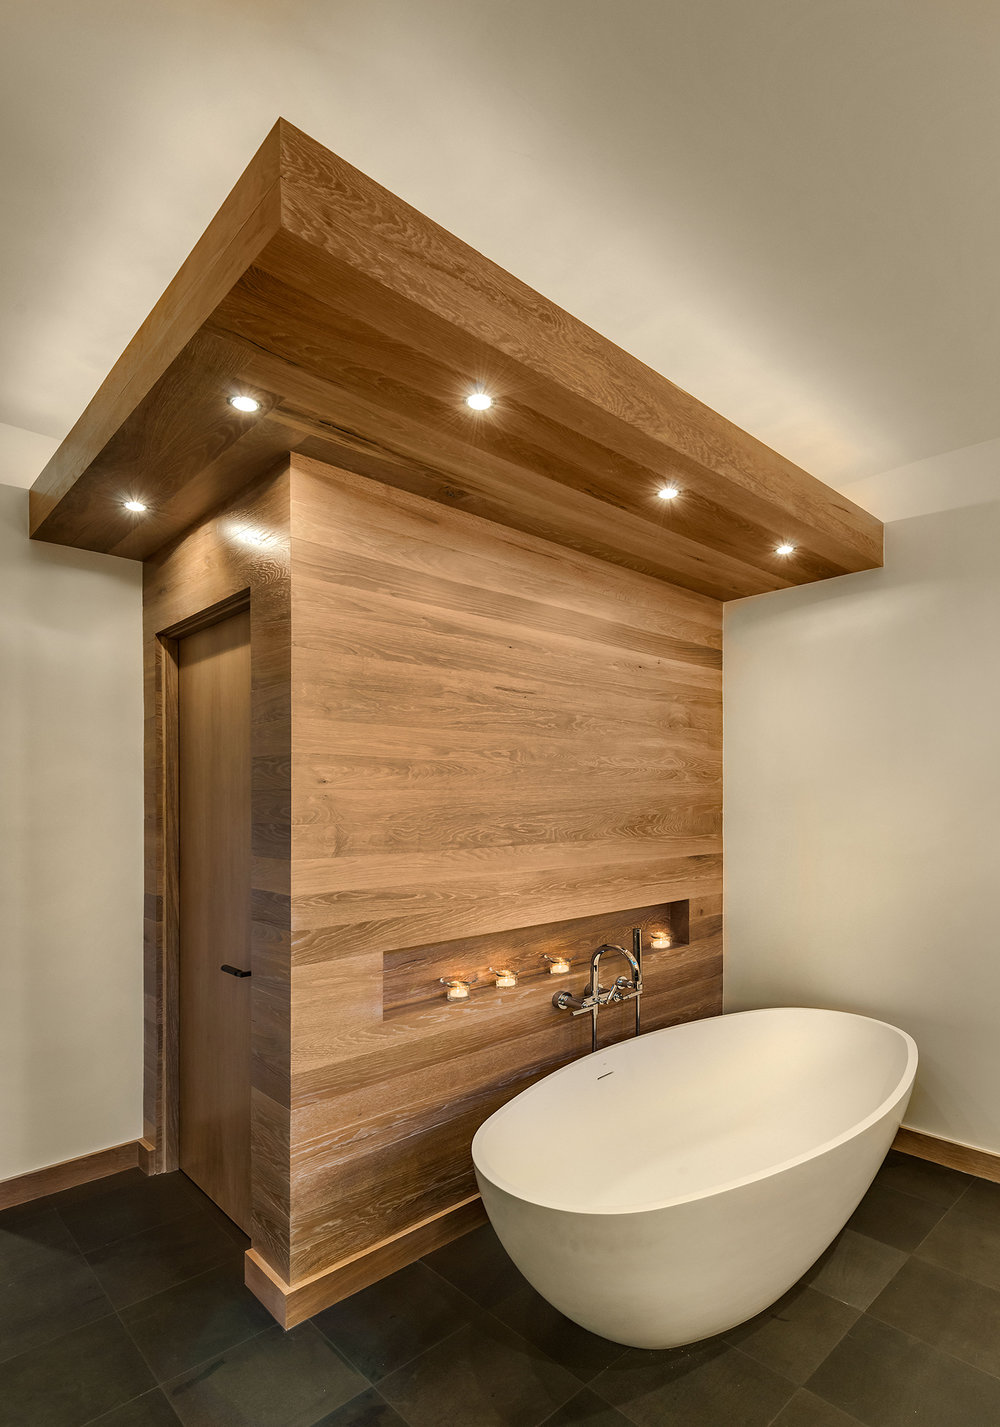 Lot 289_Master Bath_Soaking tub_toilet room.jpg